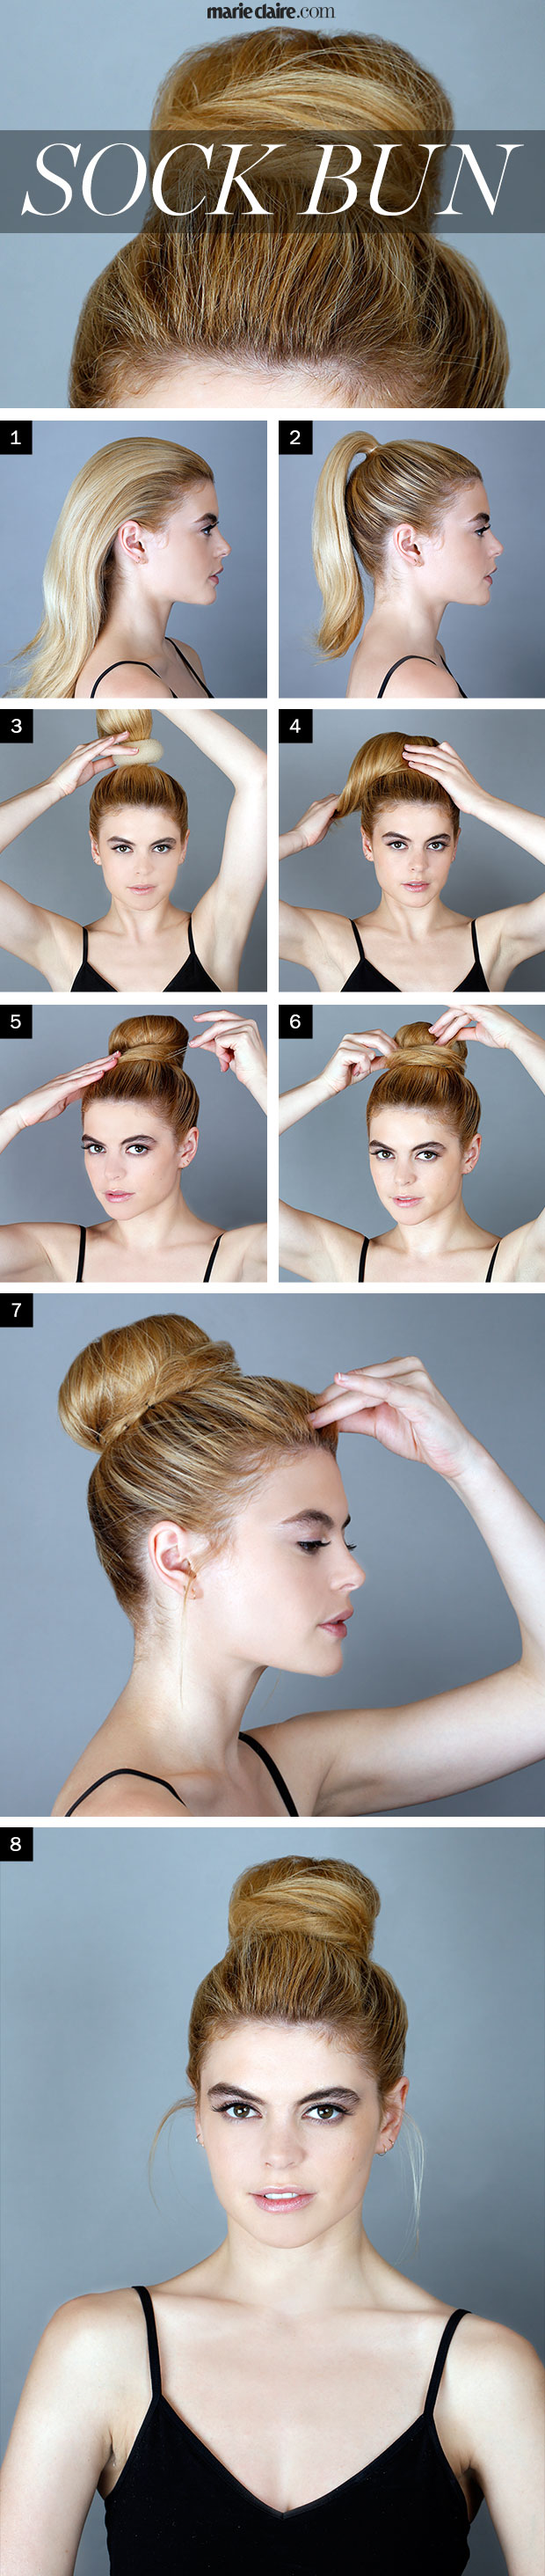 5483292db911b_-_mcx-sock-bun-how-to.jpg